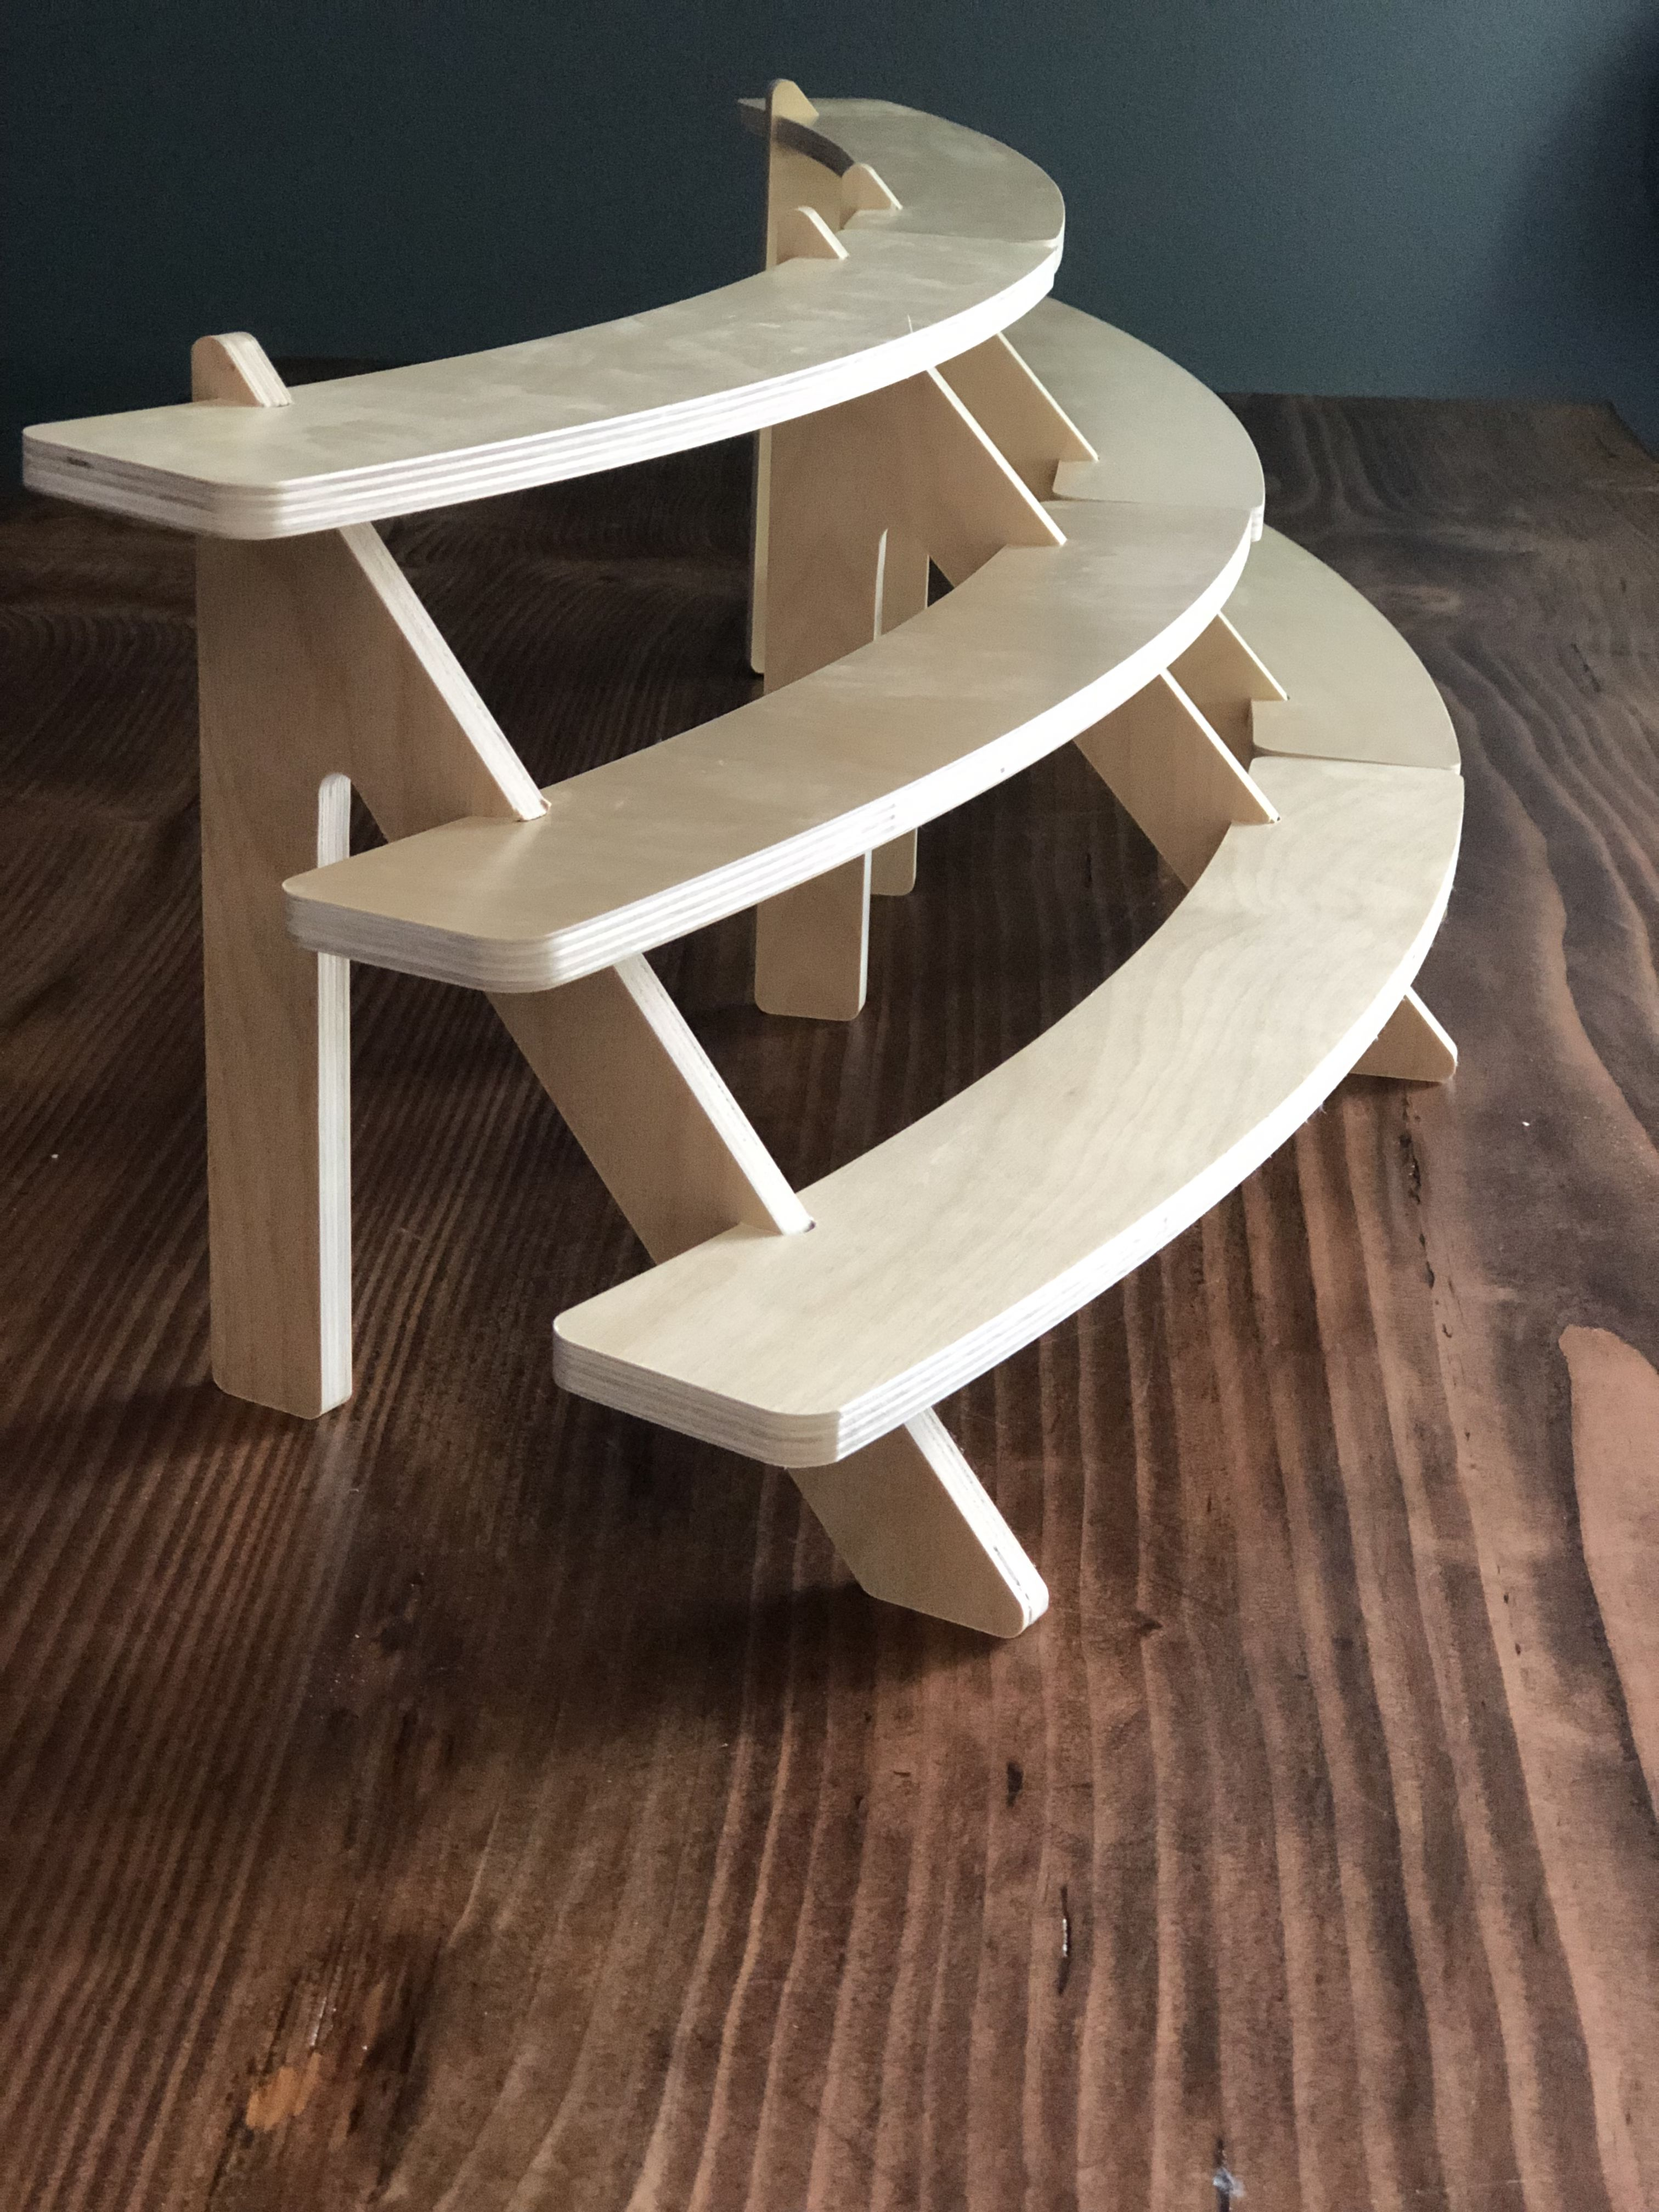 The Belly 3 Tiered Curved Shelf Craft Fair Display Market Etsy Wood Shelves Wood Display Stand Vendor Table